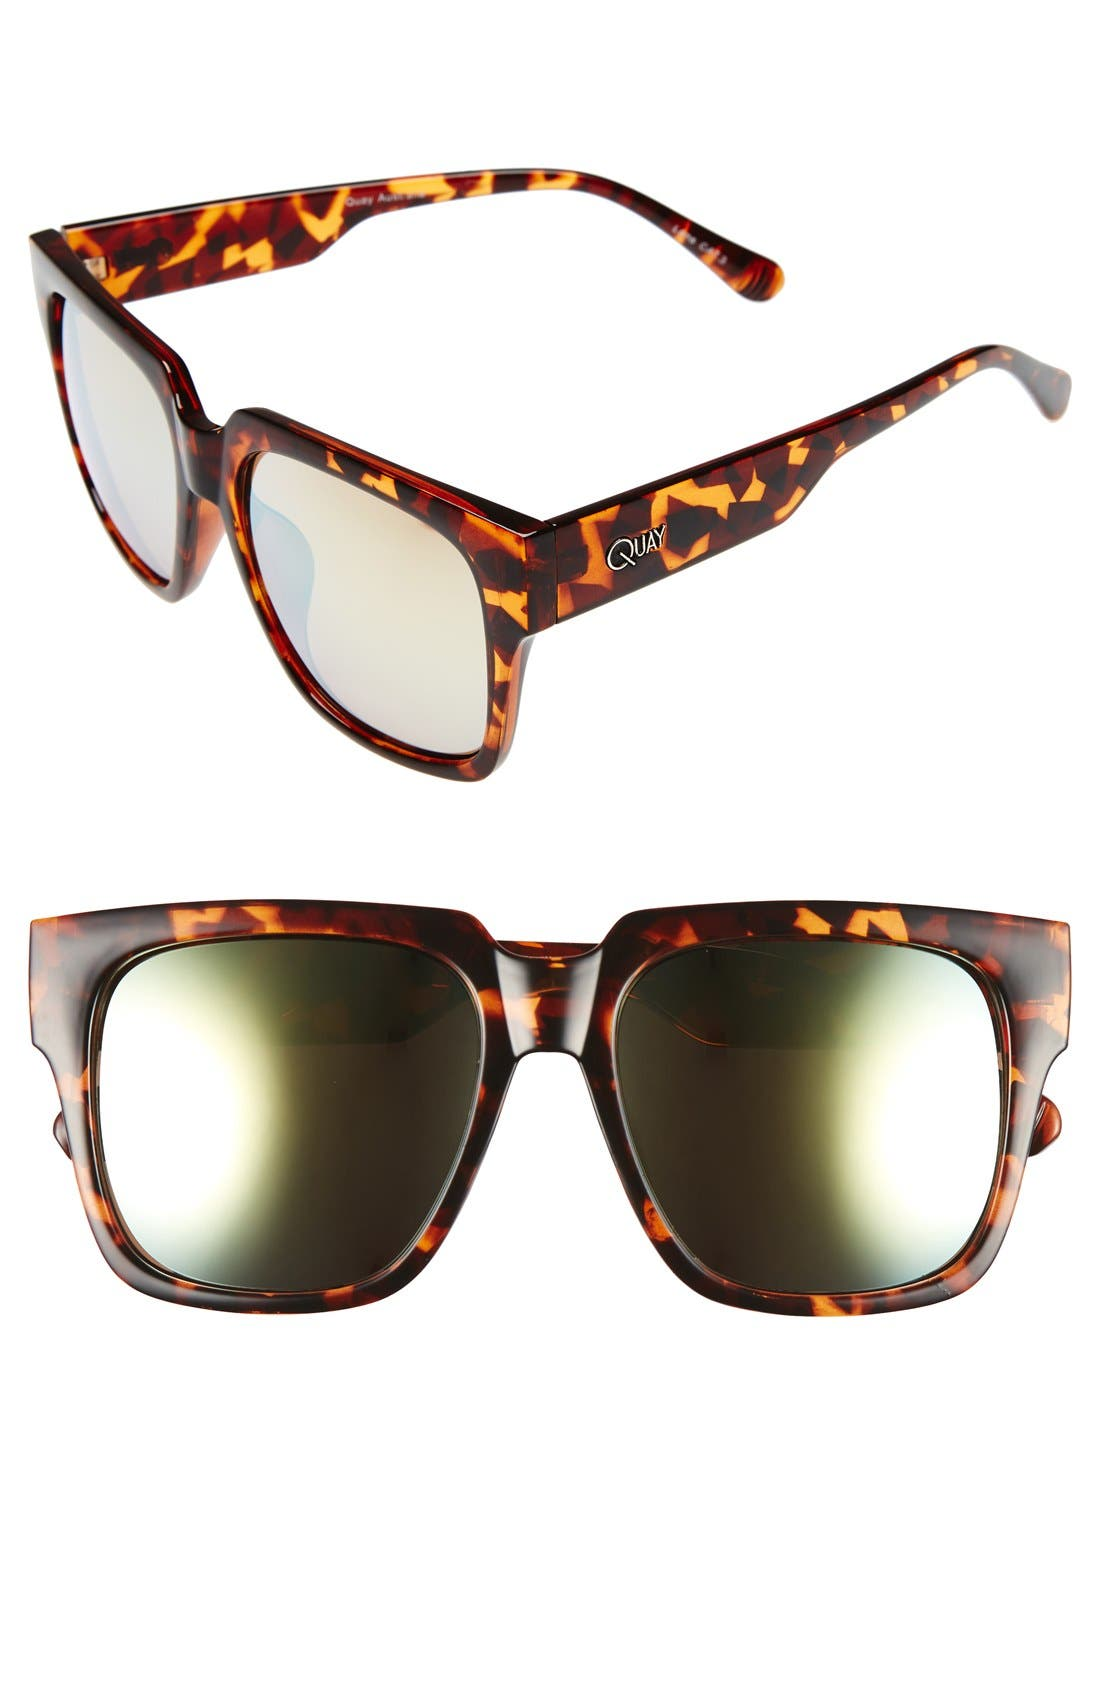 'On the Prowl' 55mm Square Sunglasses,                             Main thumbnail 1, color,                             210